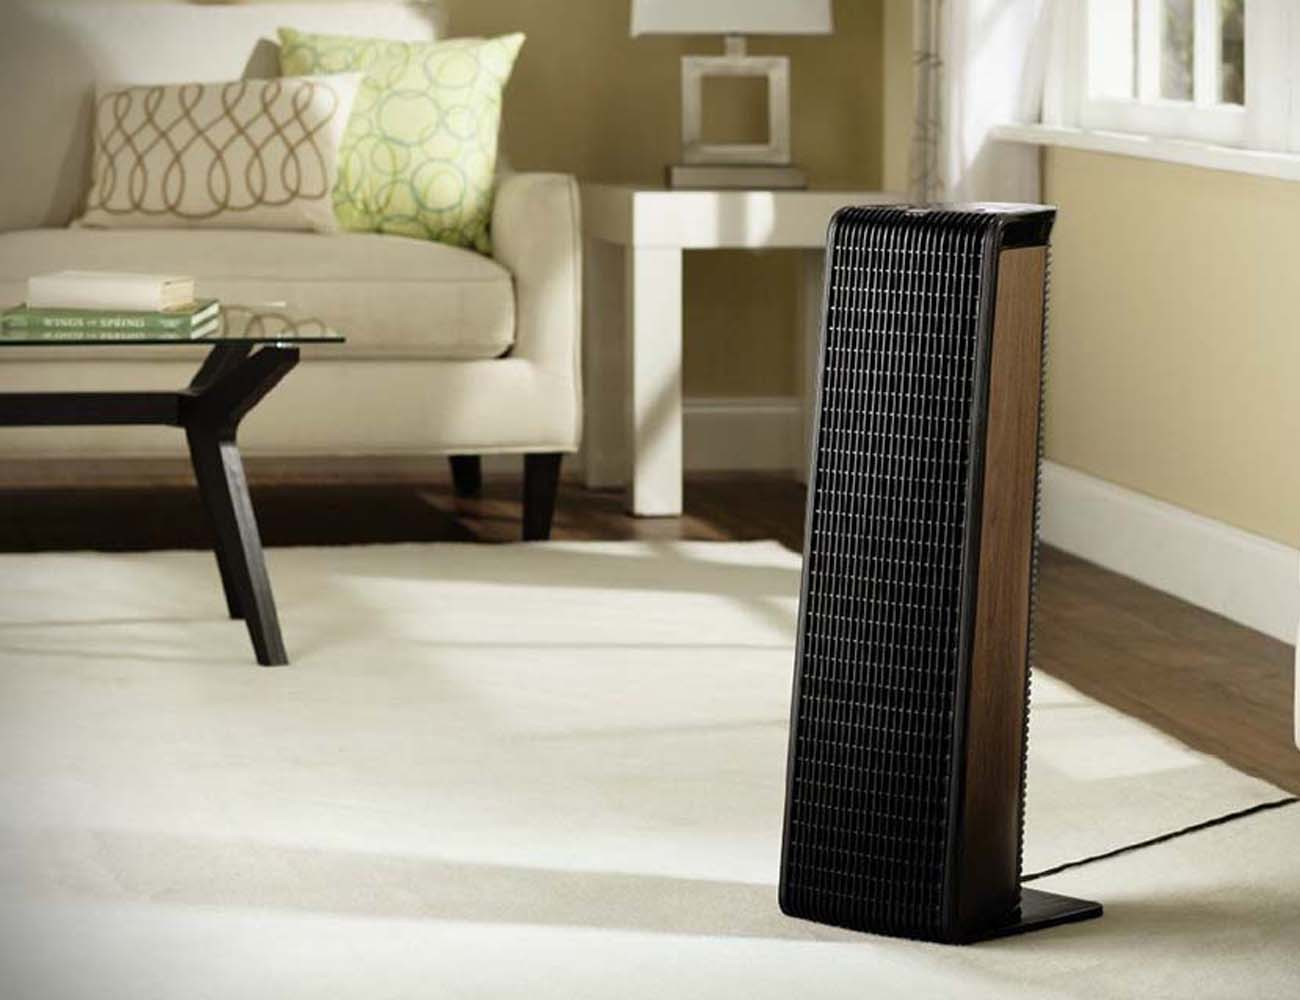 Holmes+Smart+Air+Purifier+With+WeMo